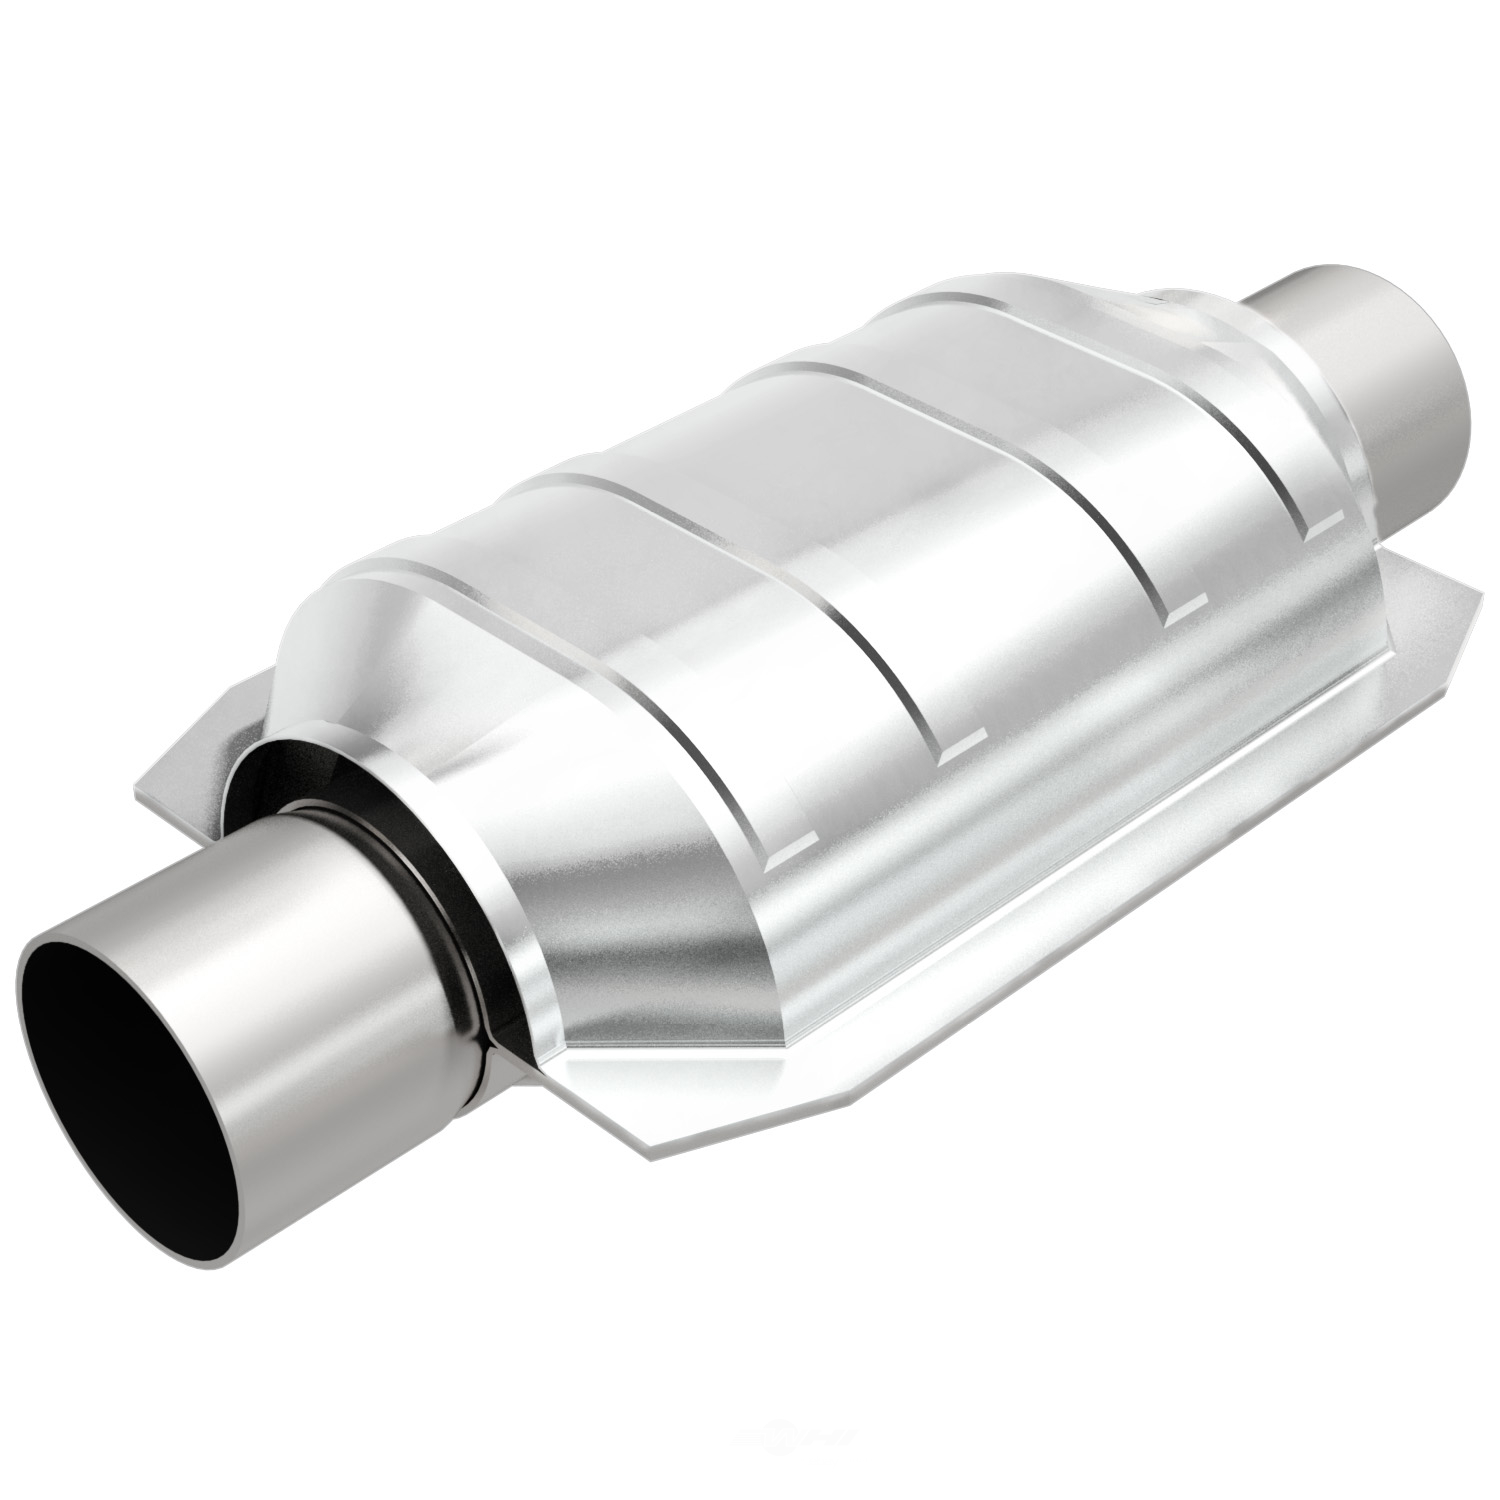 MAGNAFLOW CARB COMPLIANT CONVERTER - 2.50in. Universal California Obdii Catalytic Converter - MFC 441006